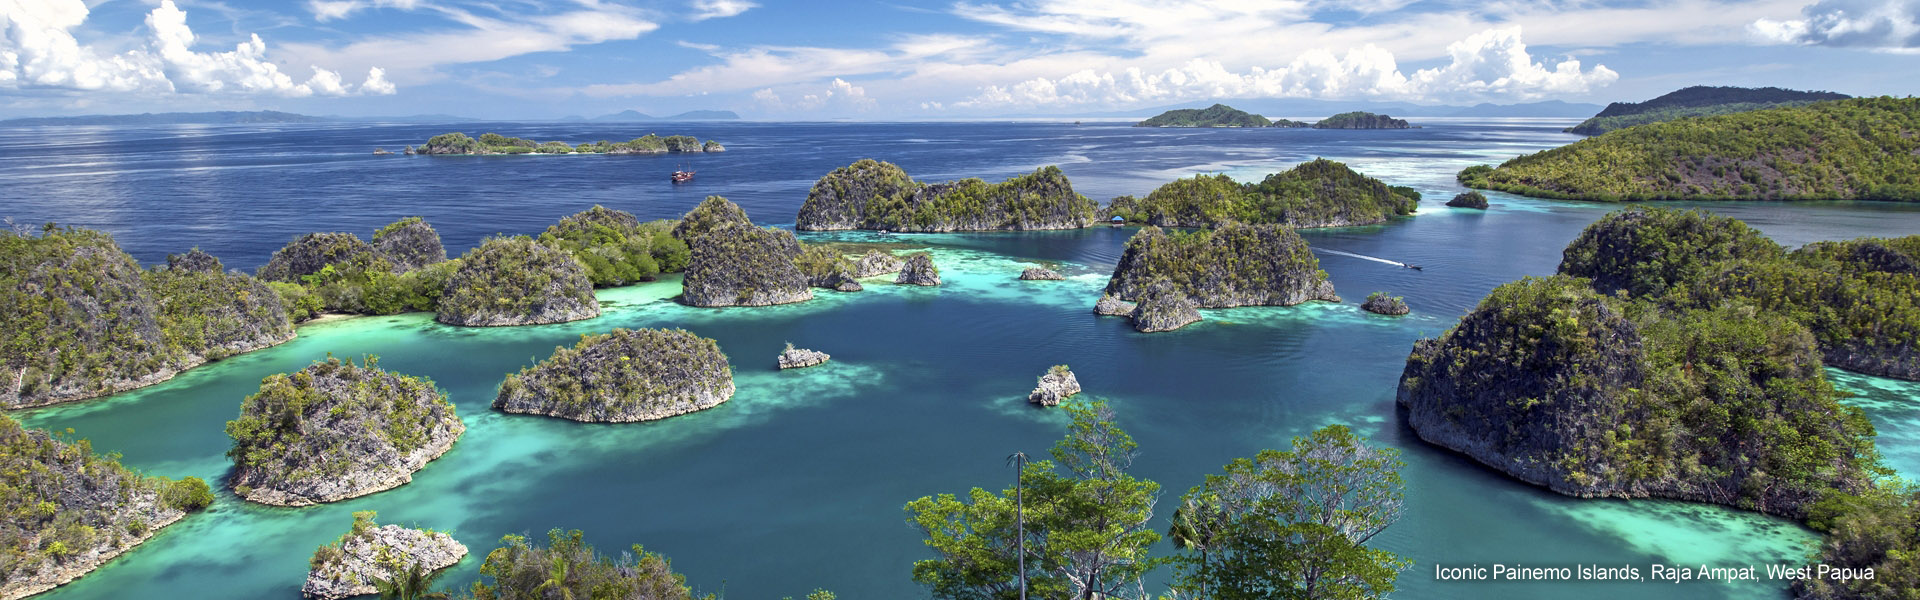 Painemo Islands, Raja ampat, West Papua